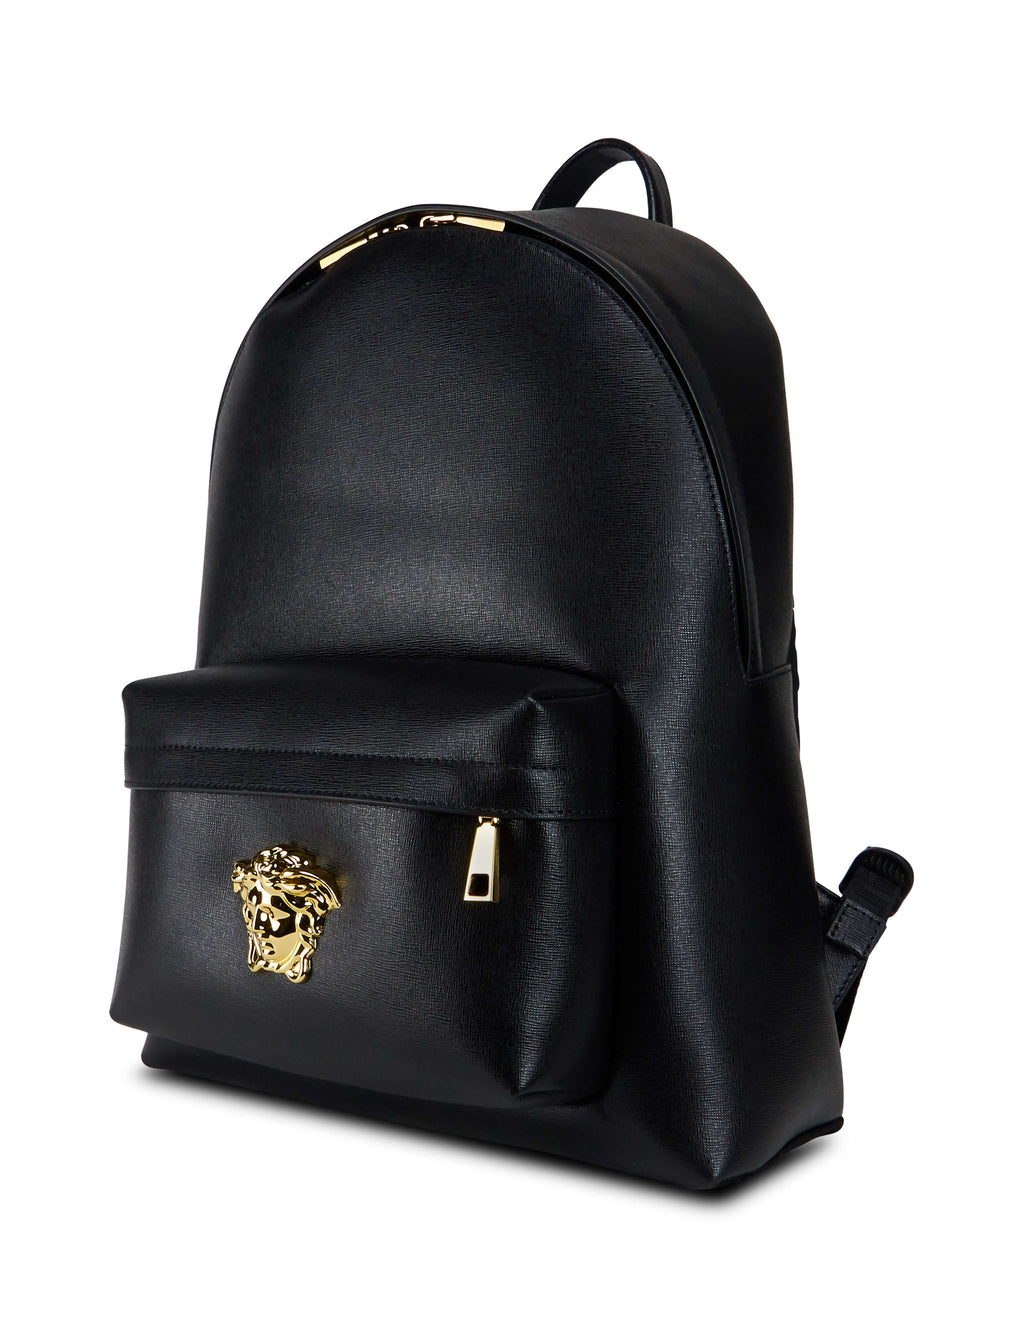 dd1a34d86ae6 Versace Men s Giulio Fashion Black Medusa Head Leather Backpack  DFZ5350DCASPD41OH